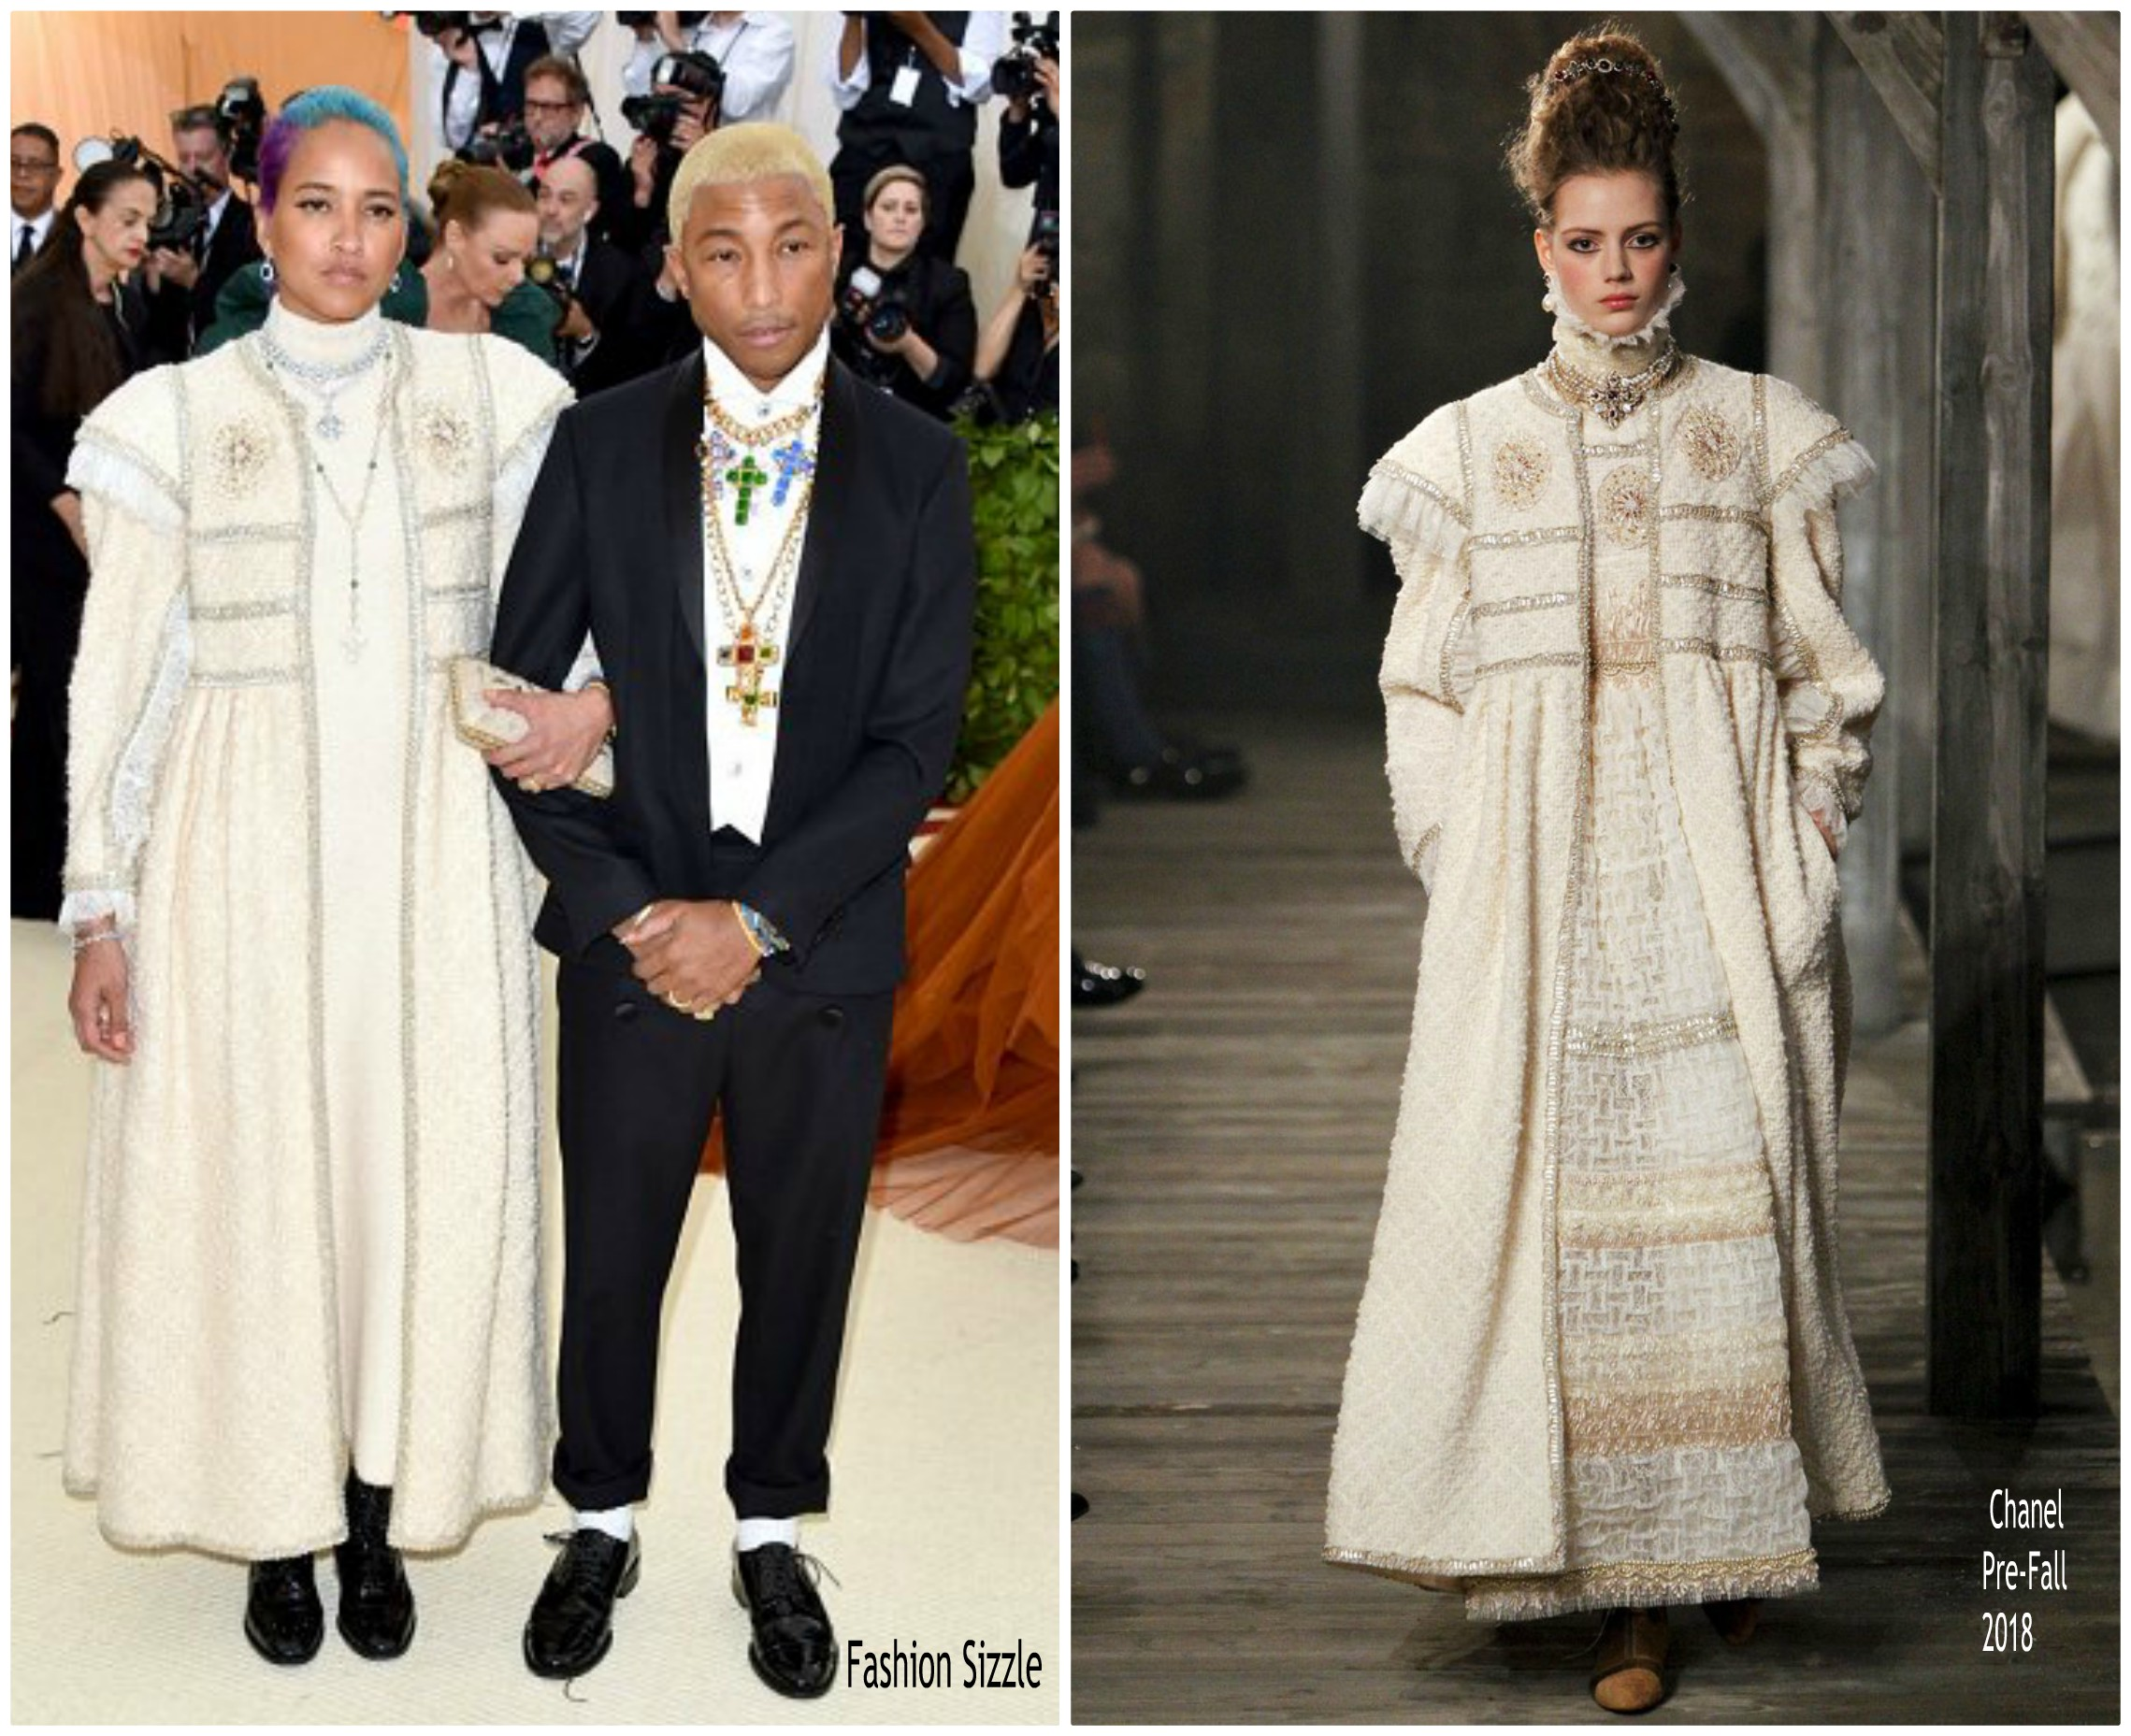 pharrell-williams-helen-laisichanh-in-chanel-2018-met-gala